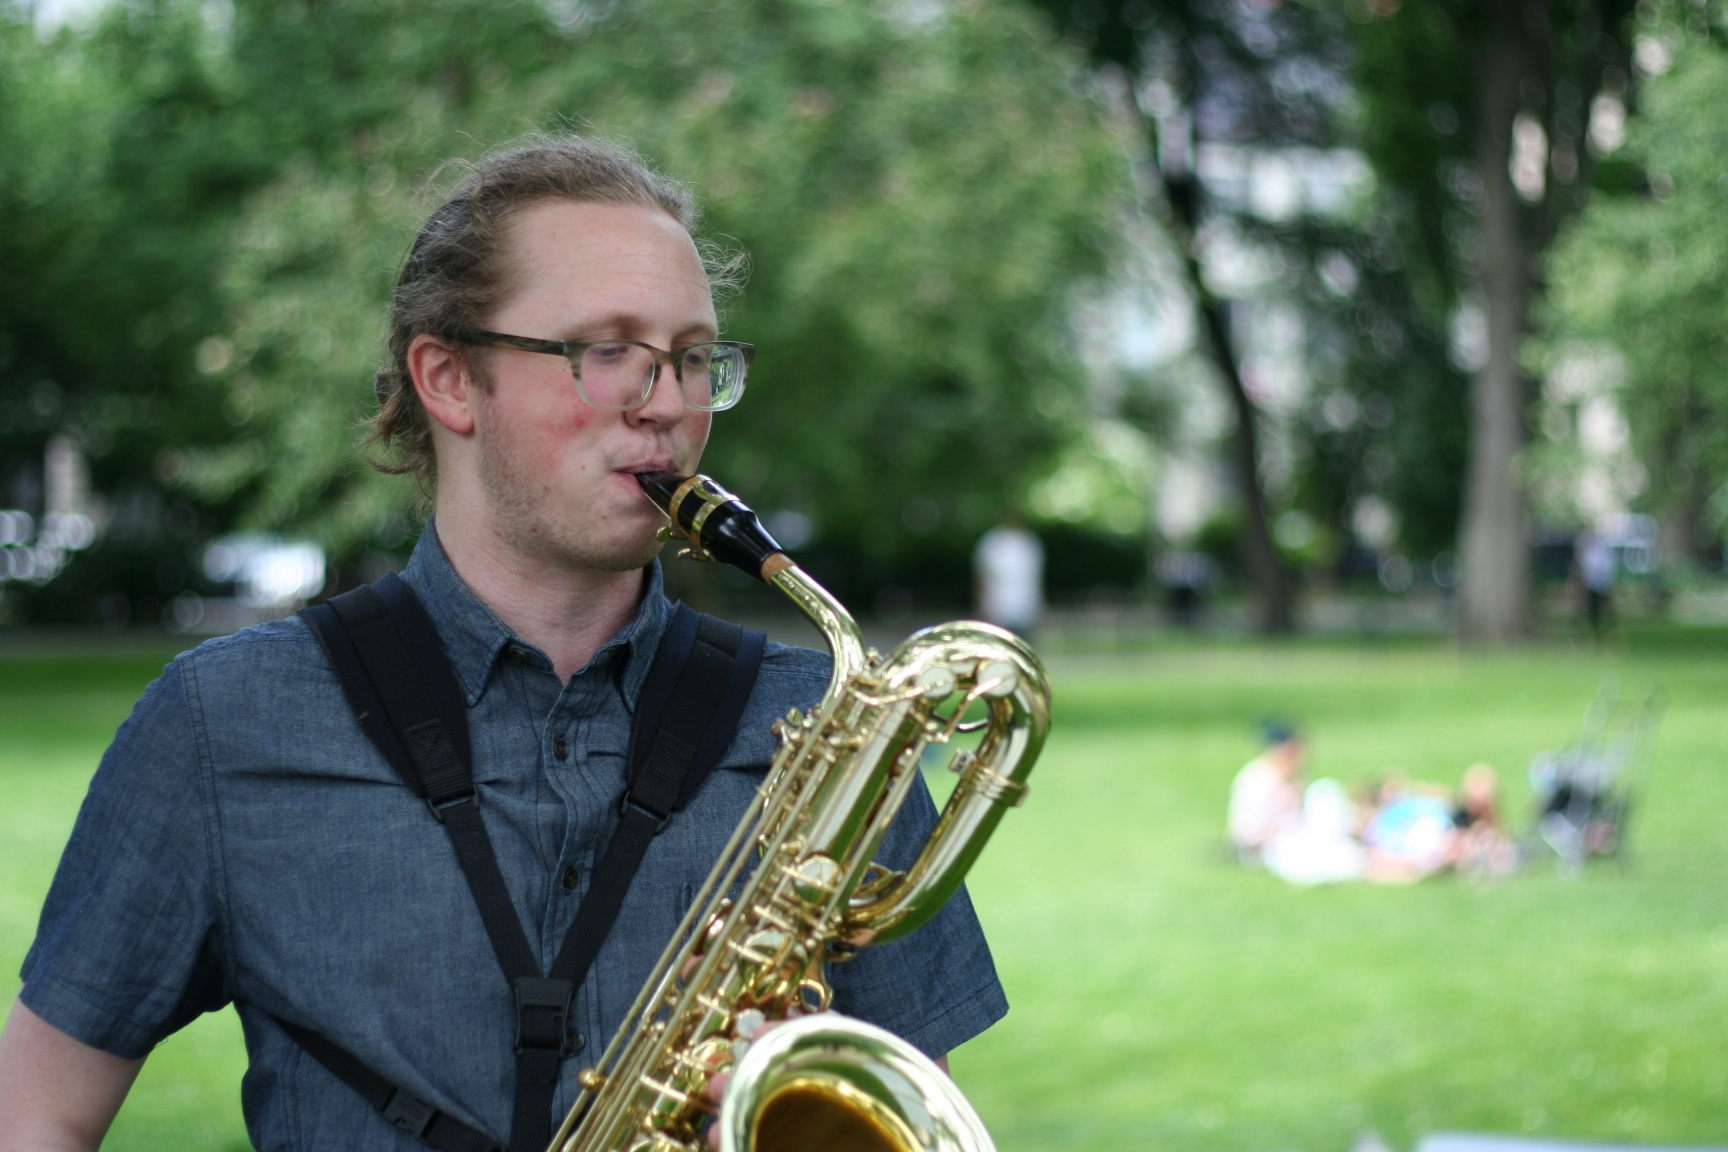 Performing in the Boston Public Garden